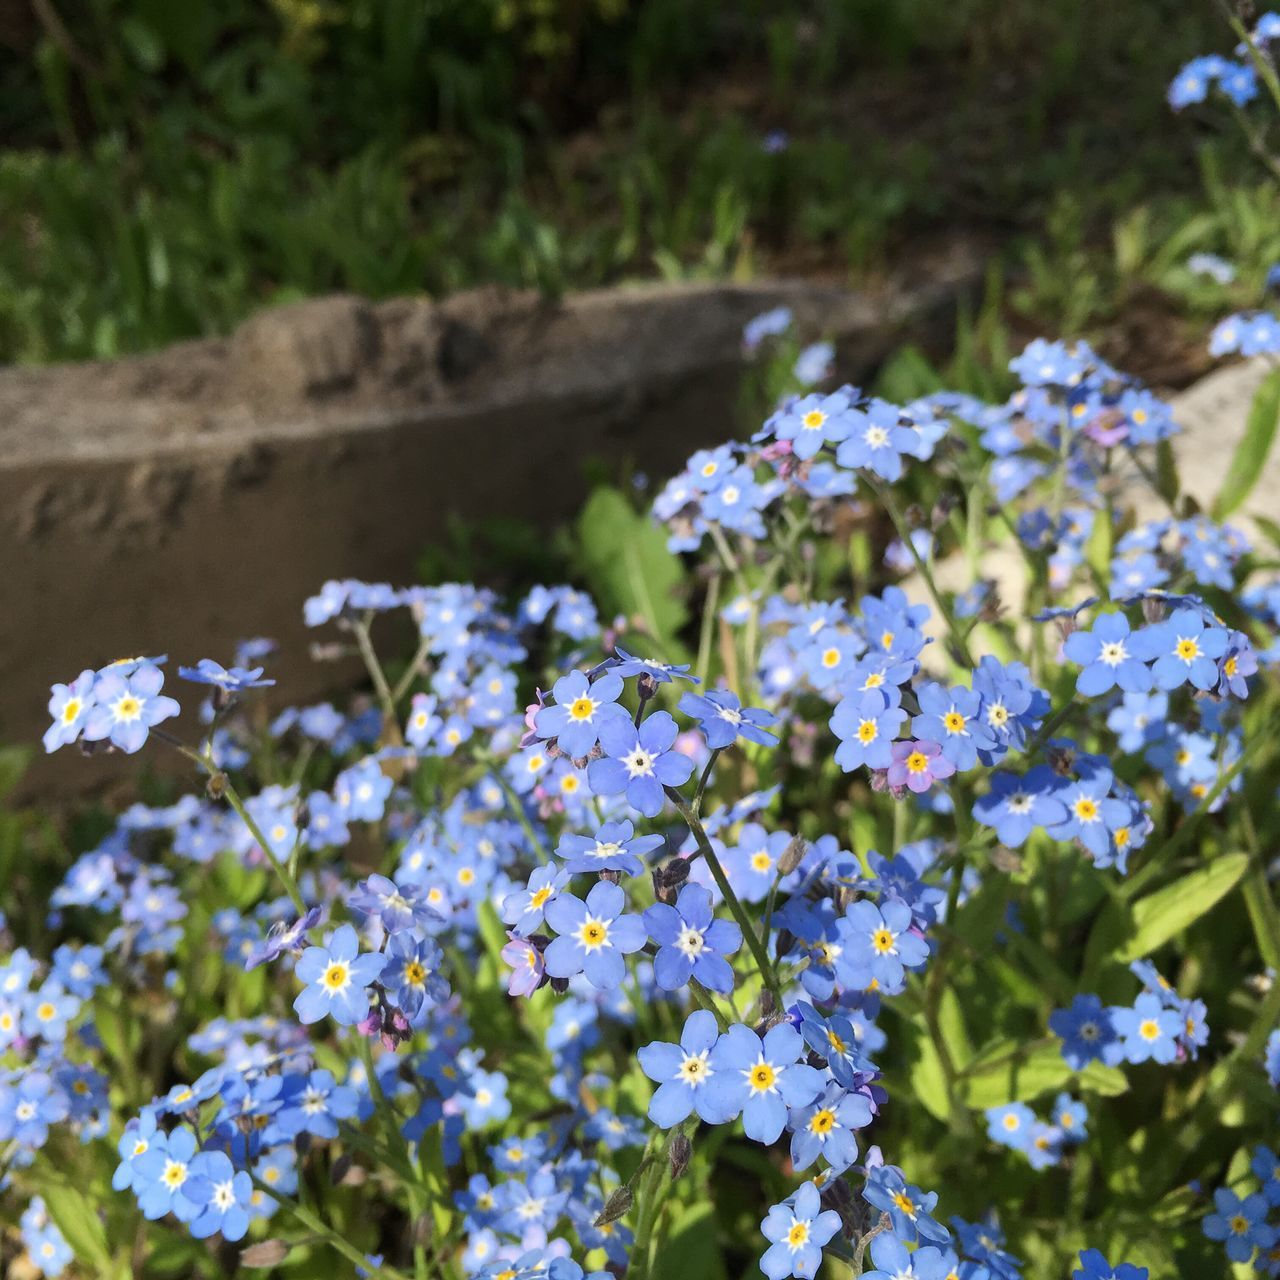 Flower Fragility Growth Nature Beauty In Nature Freshness Plant Day Outdoors Abundance Petal Blooming Field No People Green Color Springtime Flower Head Close-up Forget Me Not